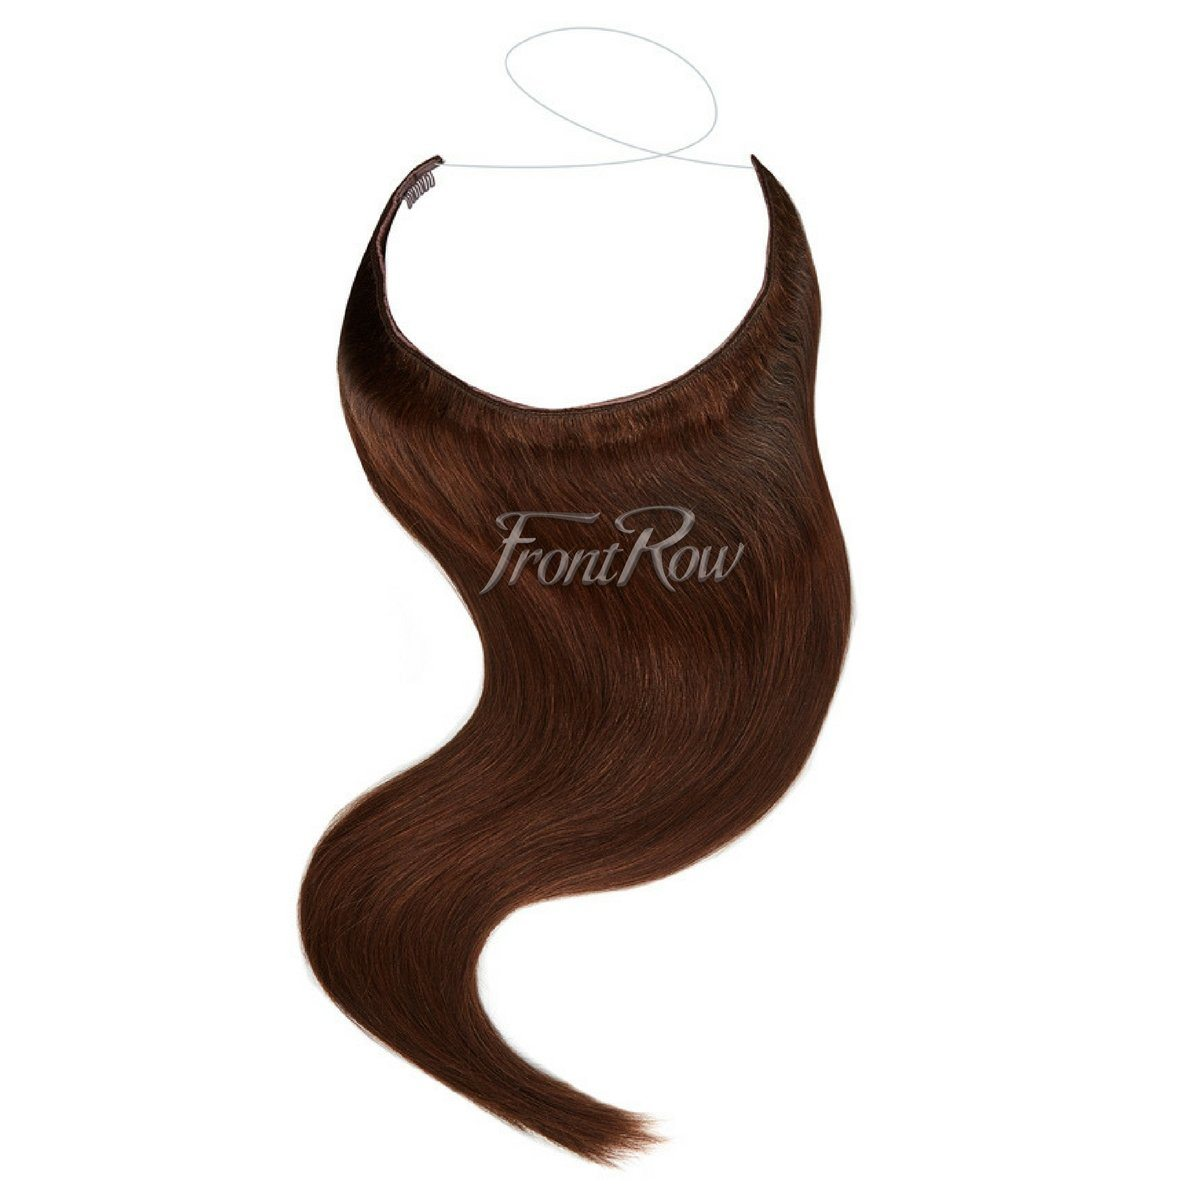 Halo hair extensions in south africa frontrow frontrowza 18inch dark brown halo hair extensions baditri Image collections